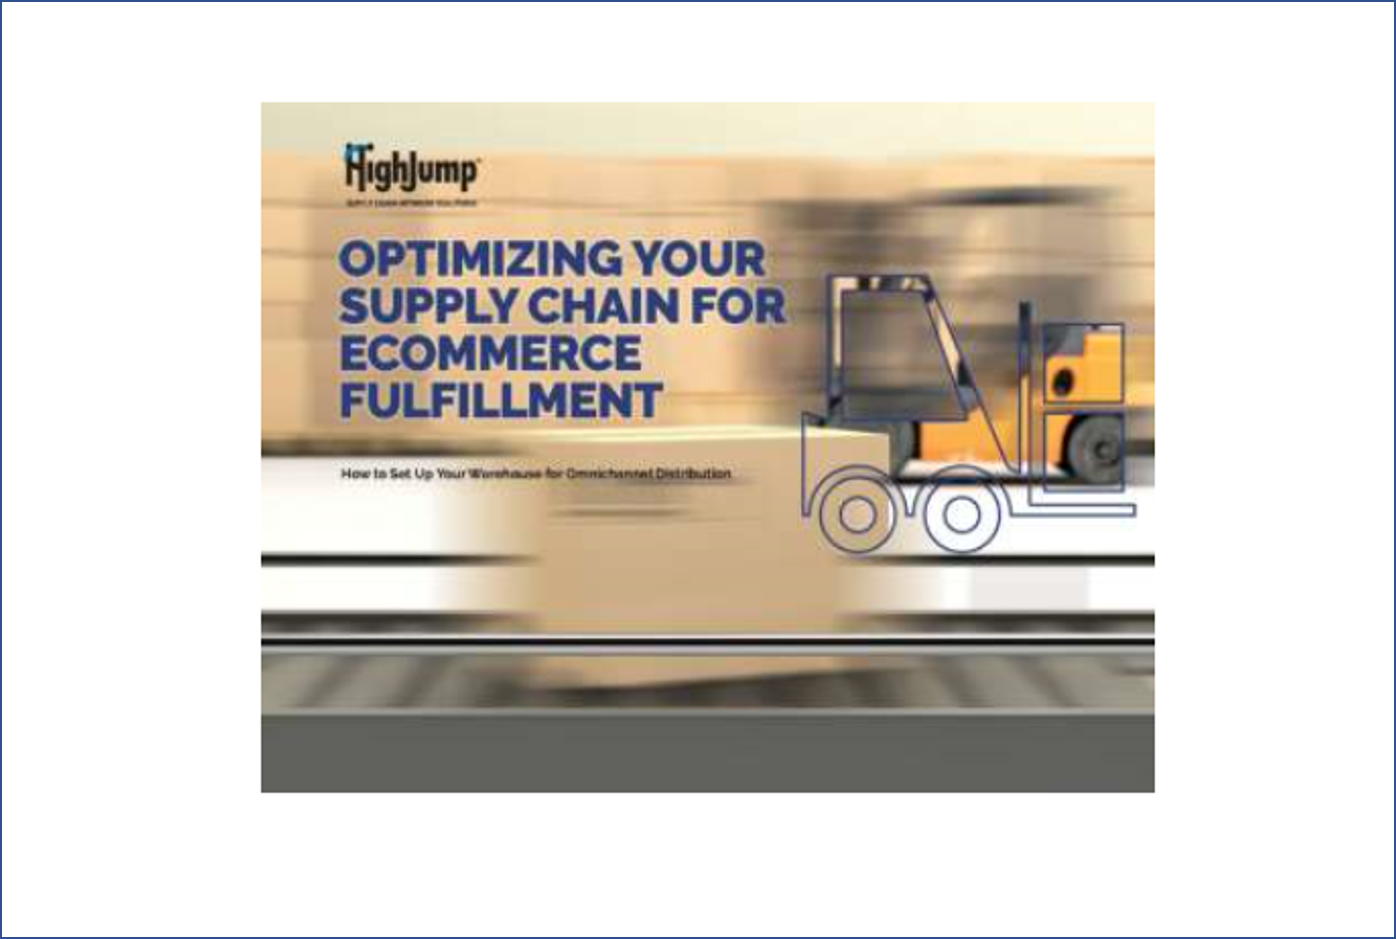 OPTIMISING YOUR SUPPLY CHAIN FOR ECOMMERCE FULFILLMENT